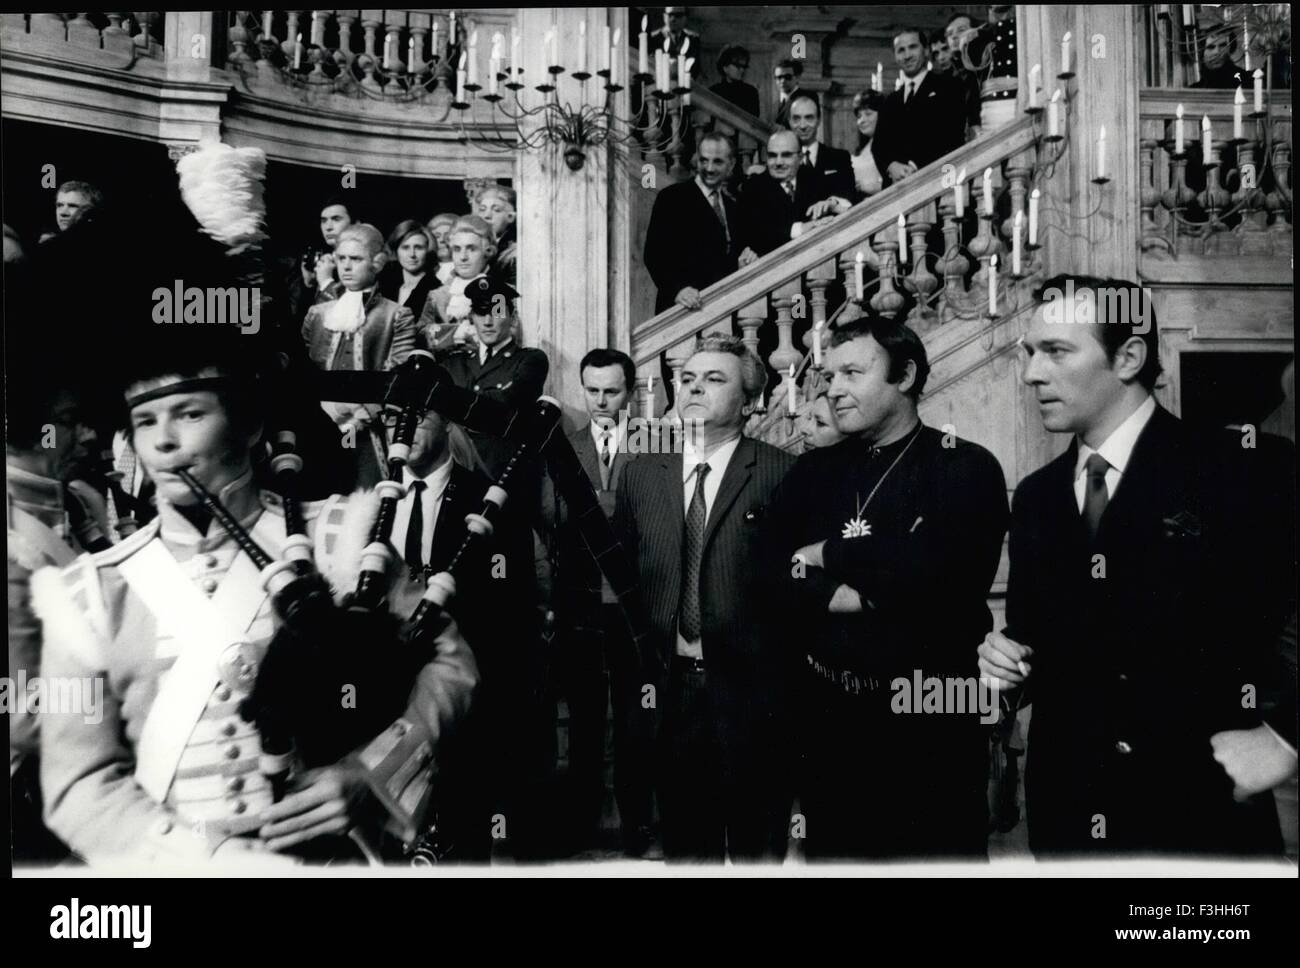 Feb. 24, 1978 - At the occasion of the beginning of the film ''Waterloo'' a great reception was held at the De Laurentiis Stock Photo